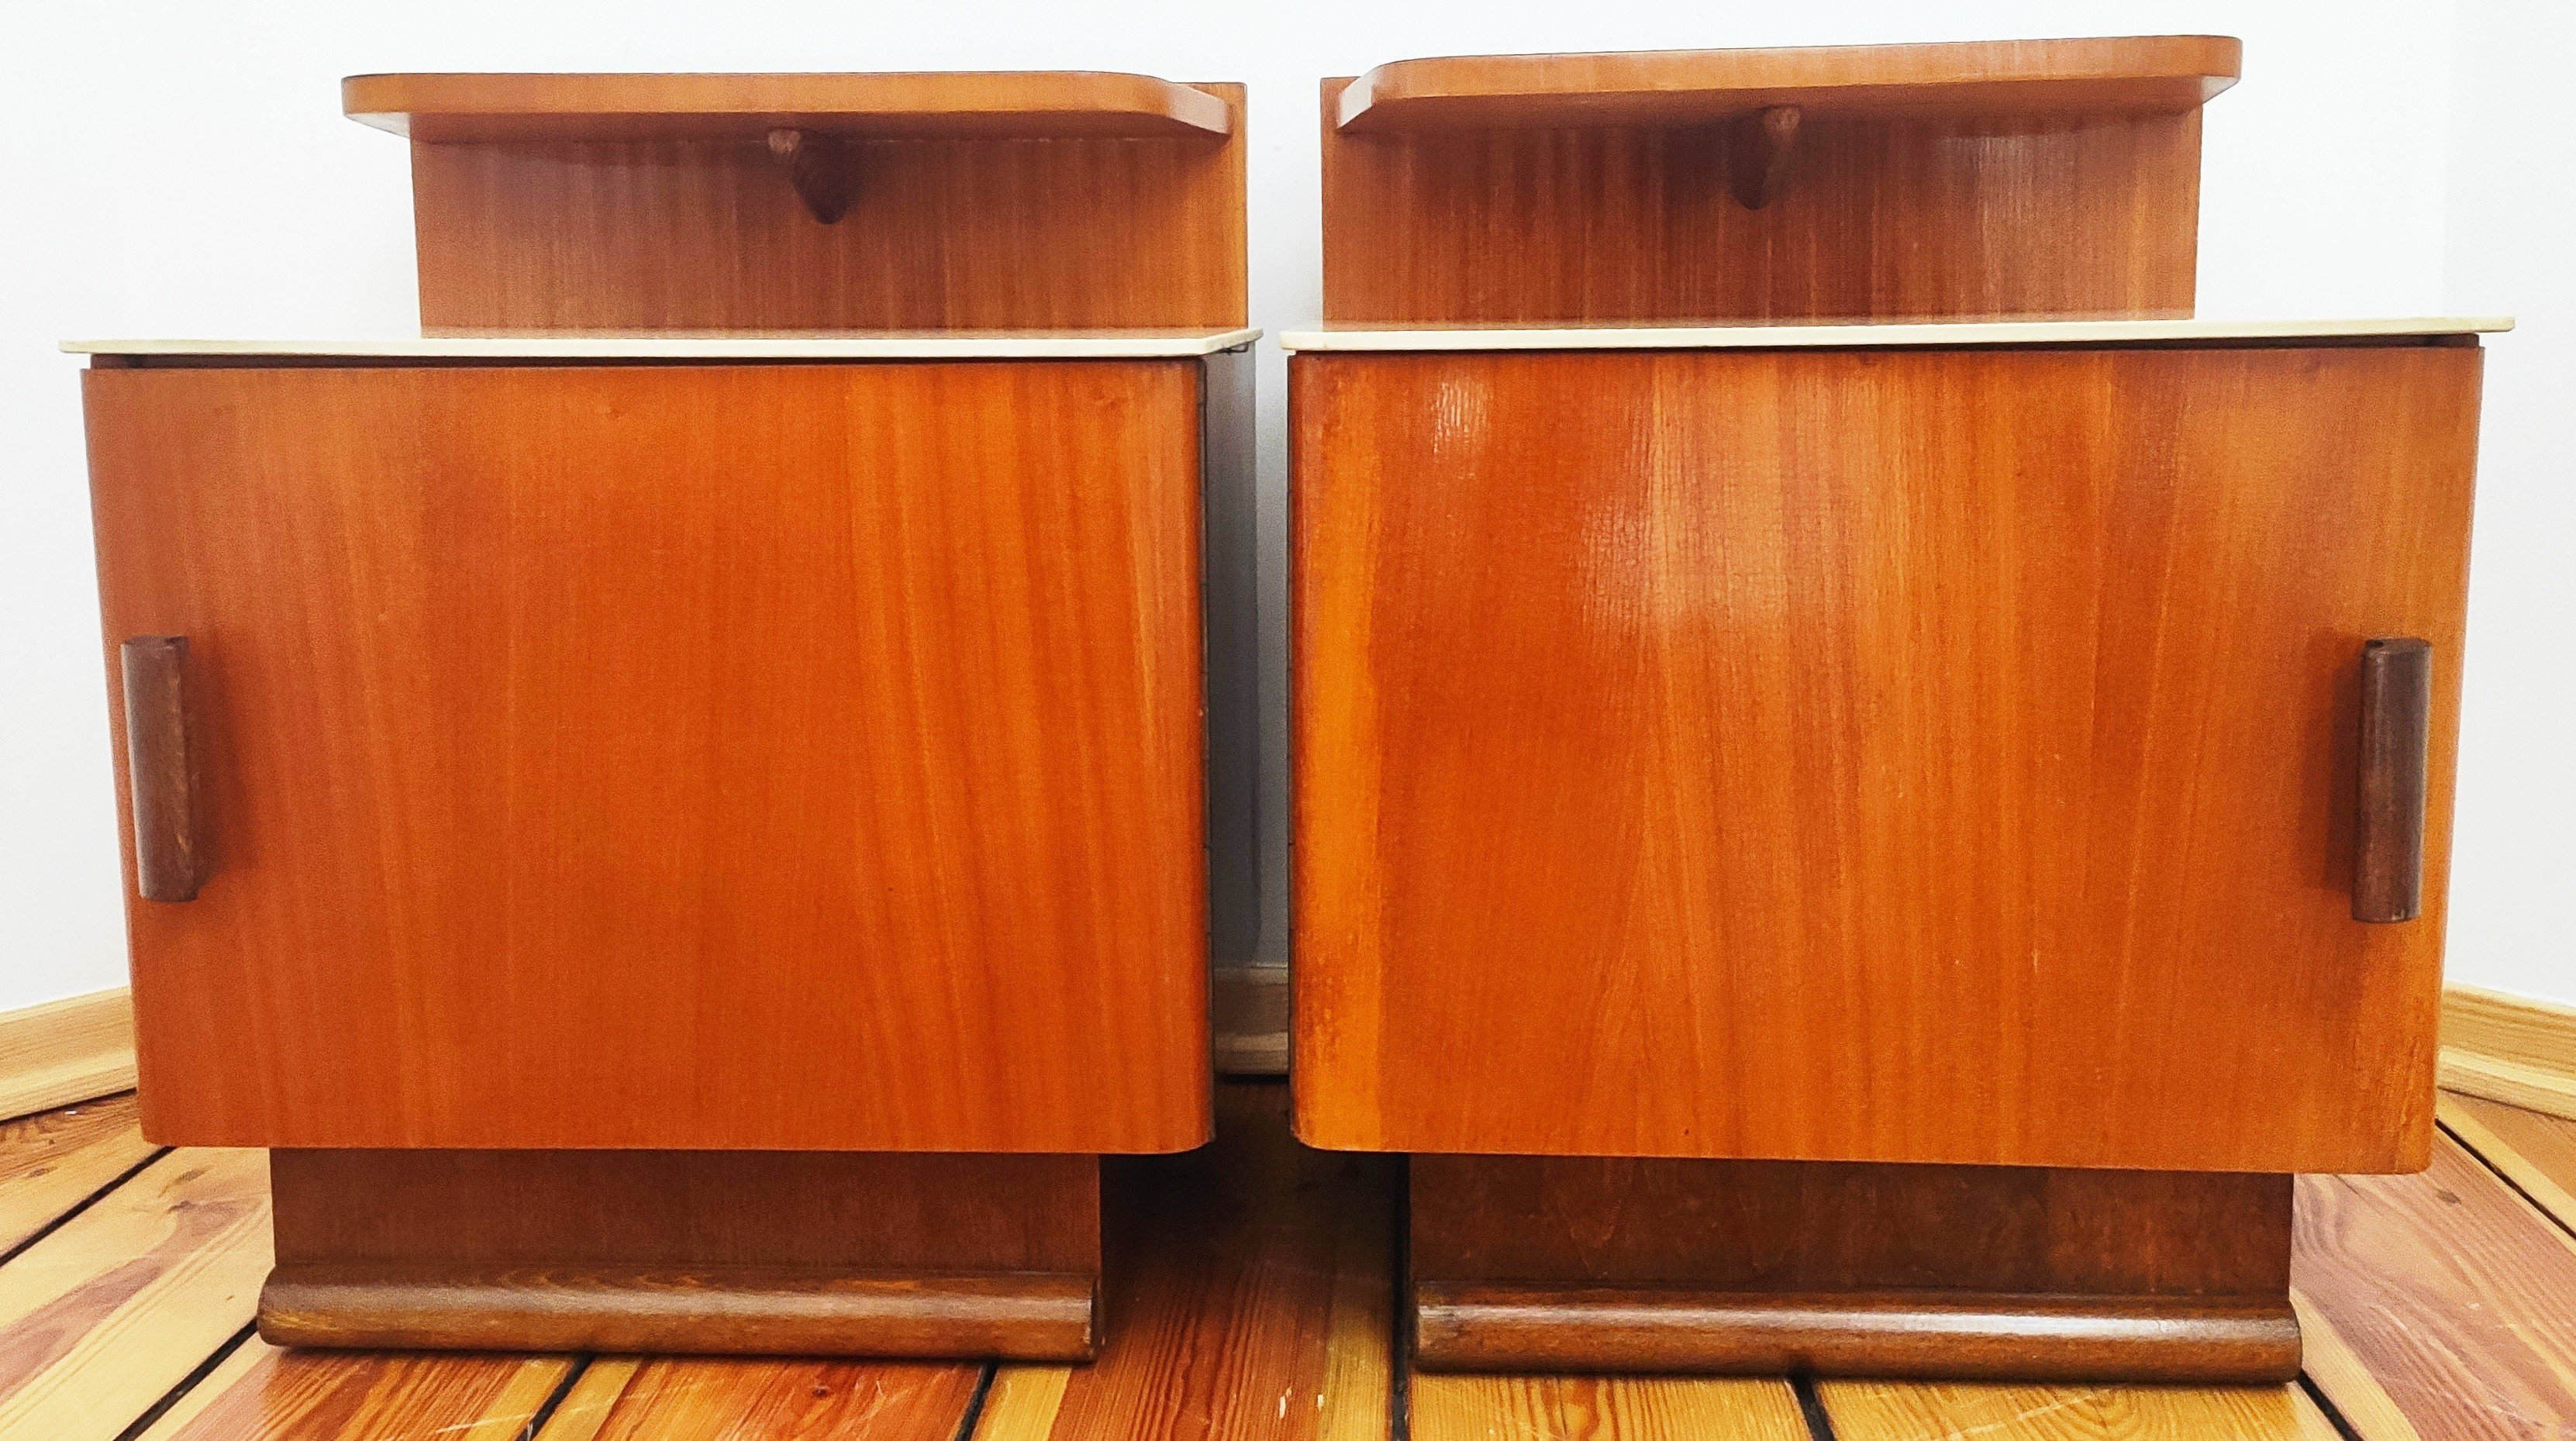 Pair of Nightstands by J. Halabala for UP Závody, Czechoslovakia, 1950s - 516724 - photo